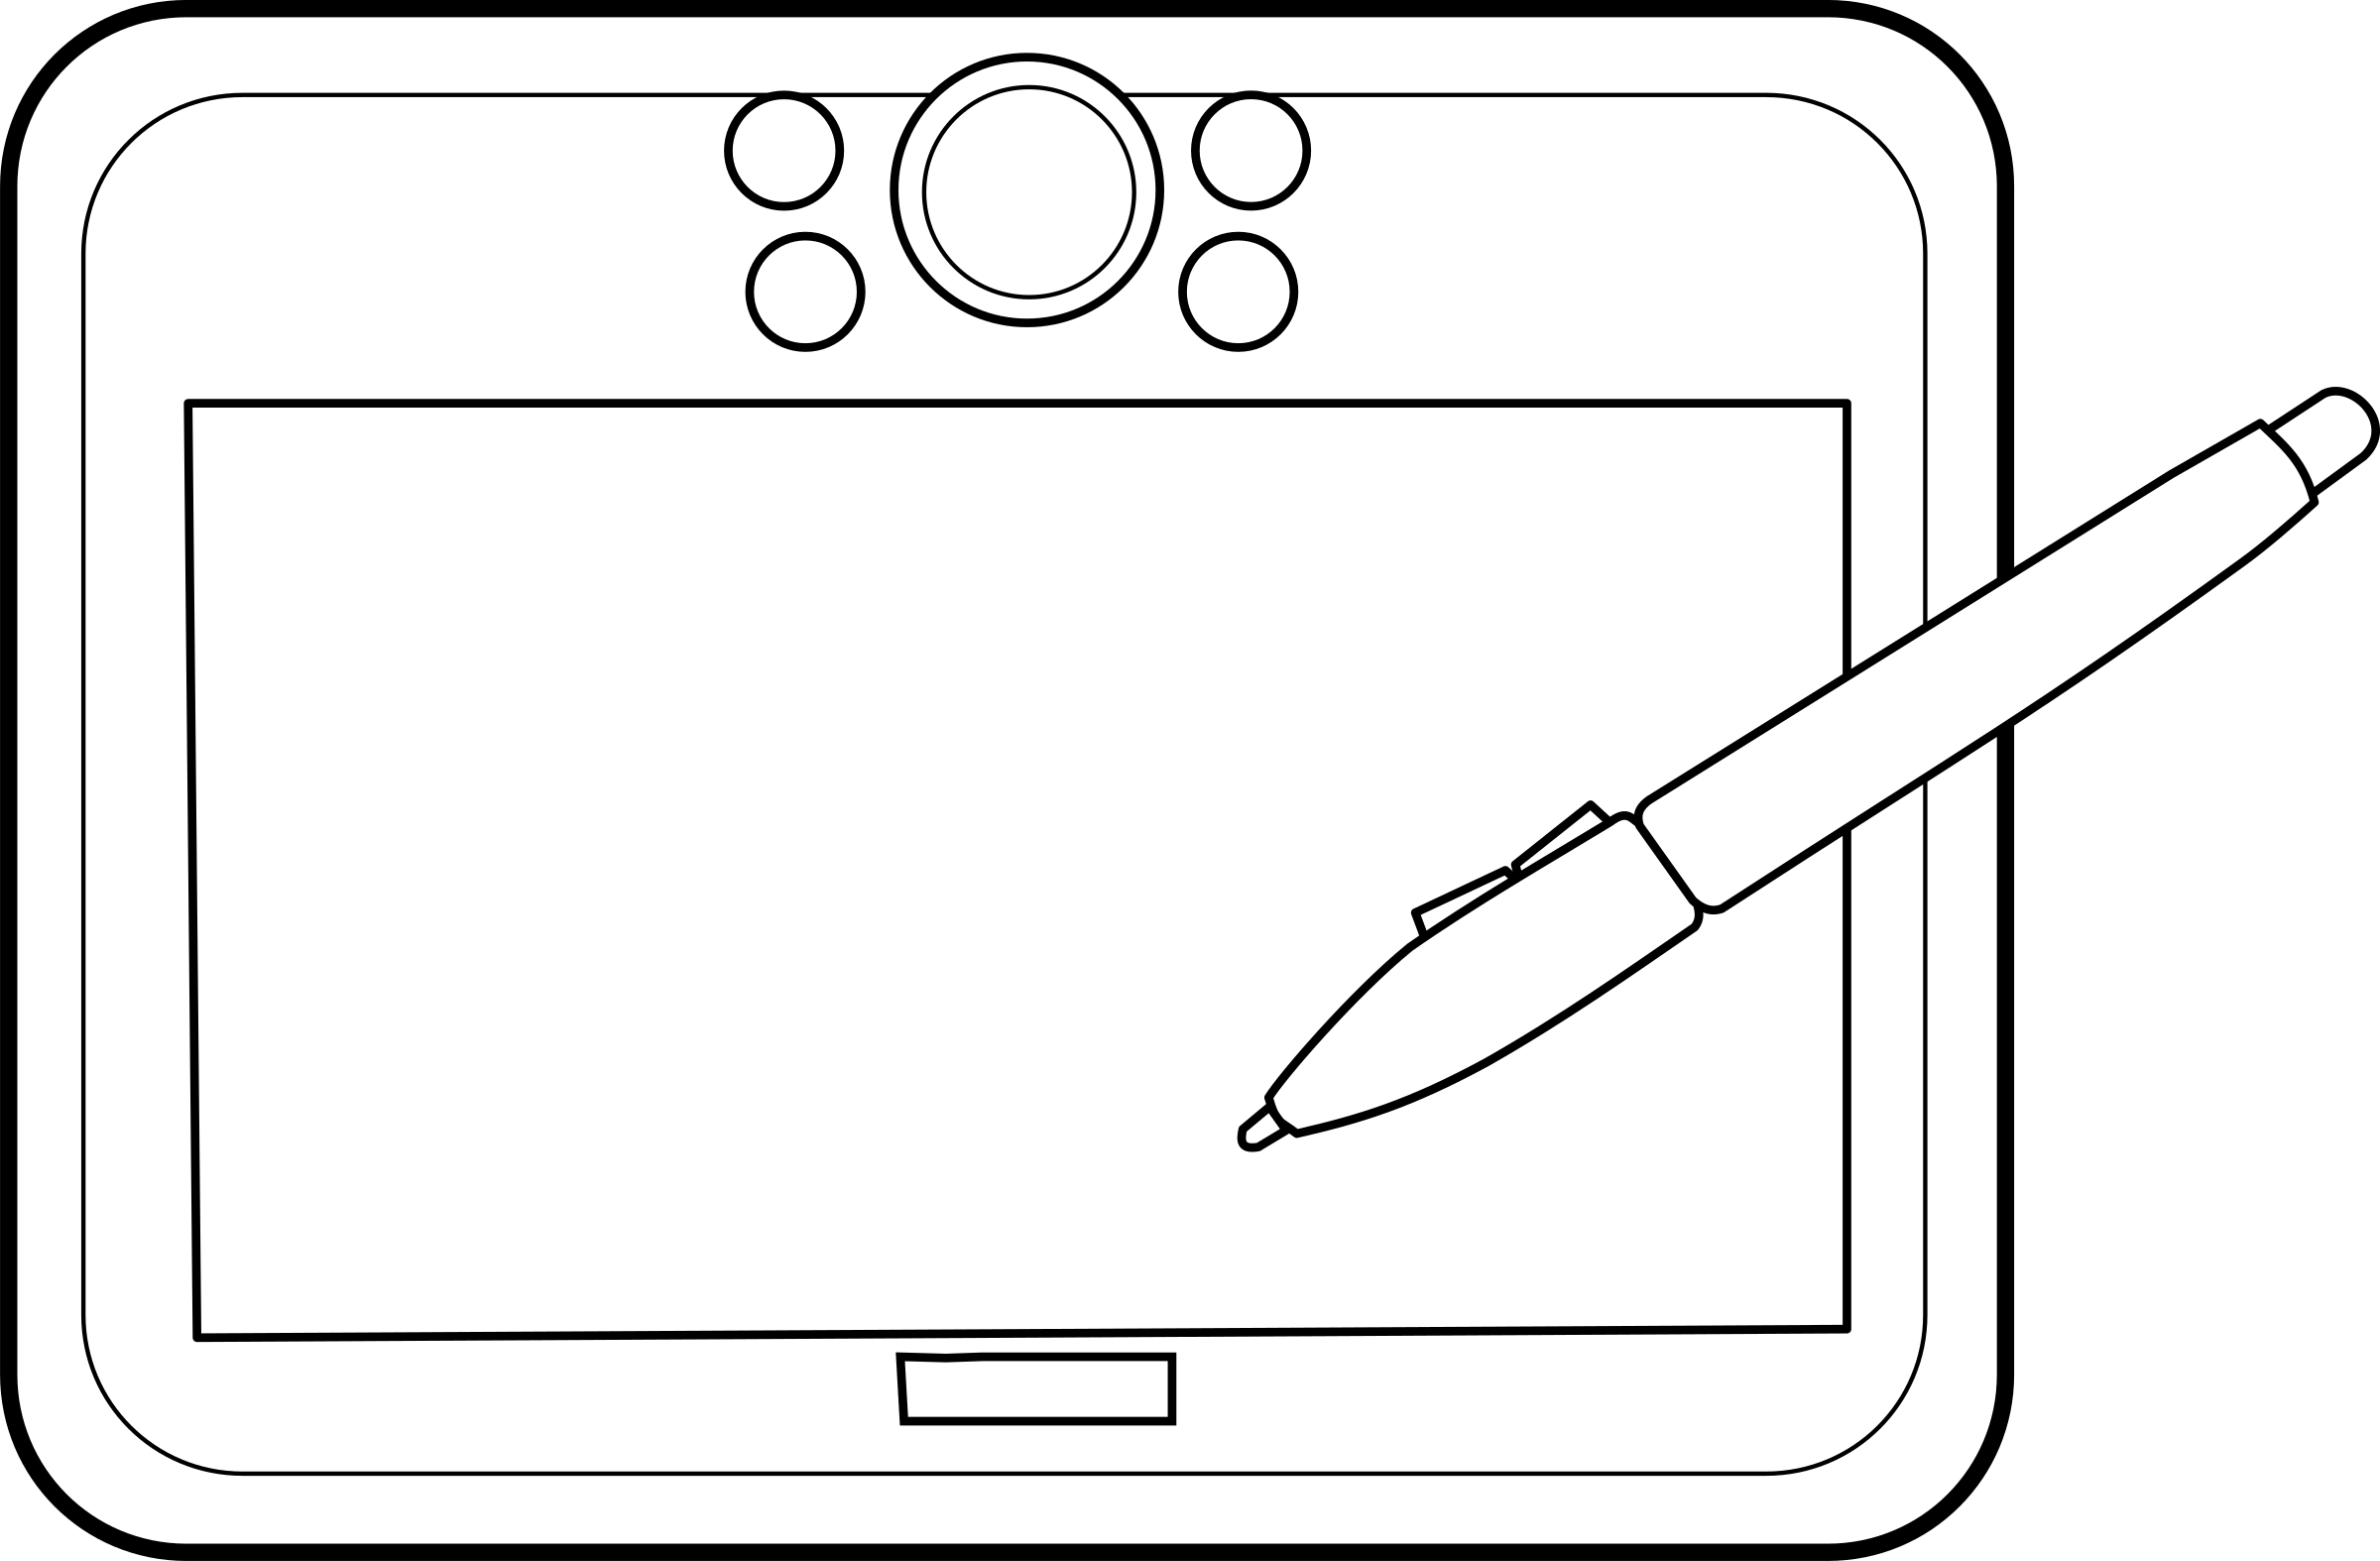 Graphic Tablet  by lmproulx